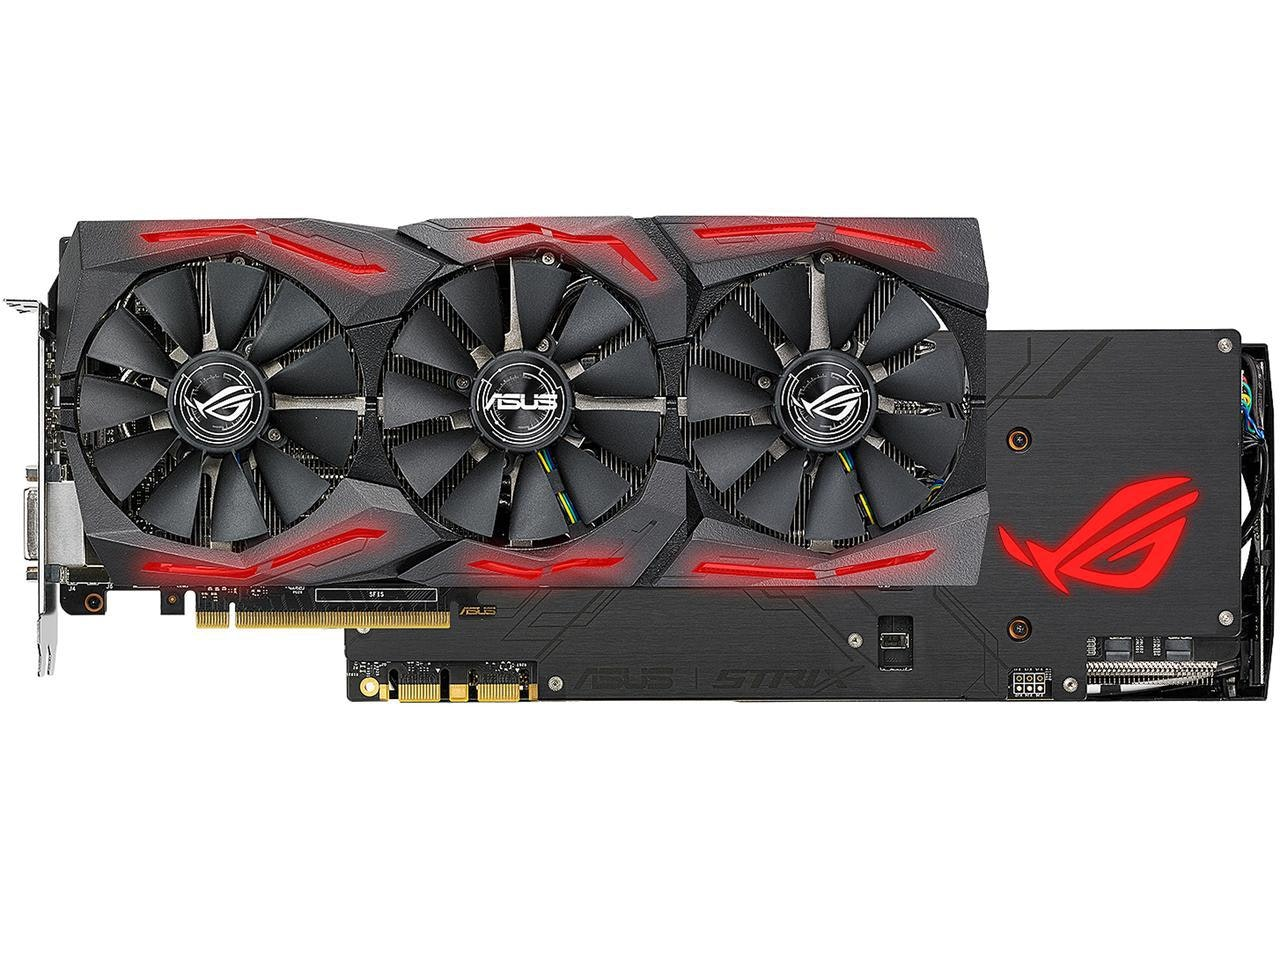 ASUS ROG GeForce GTX 1080 Ti DirectX 12 STRIX-GTX1080TI-O11G-GAMING 11GB 352-Bit